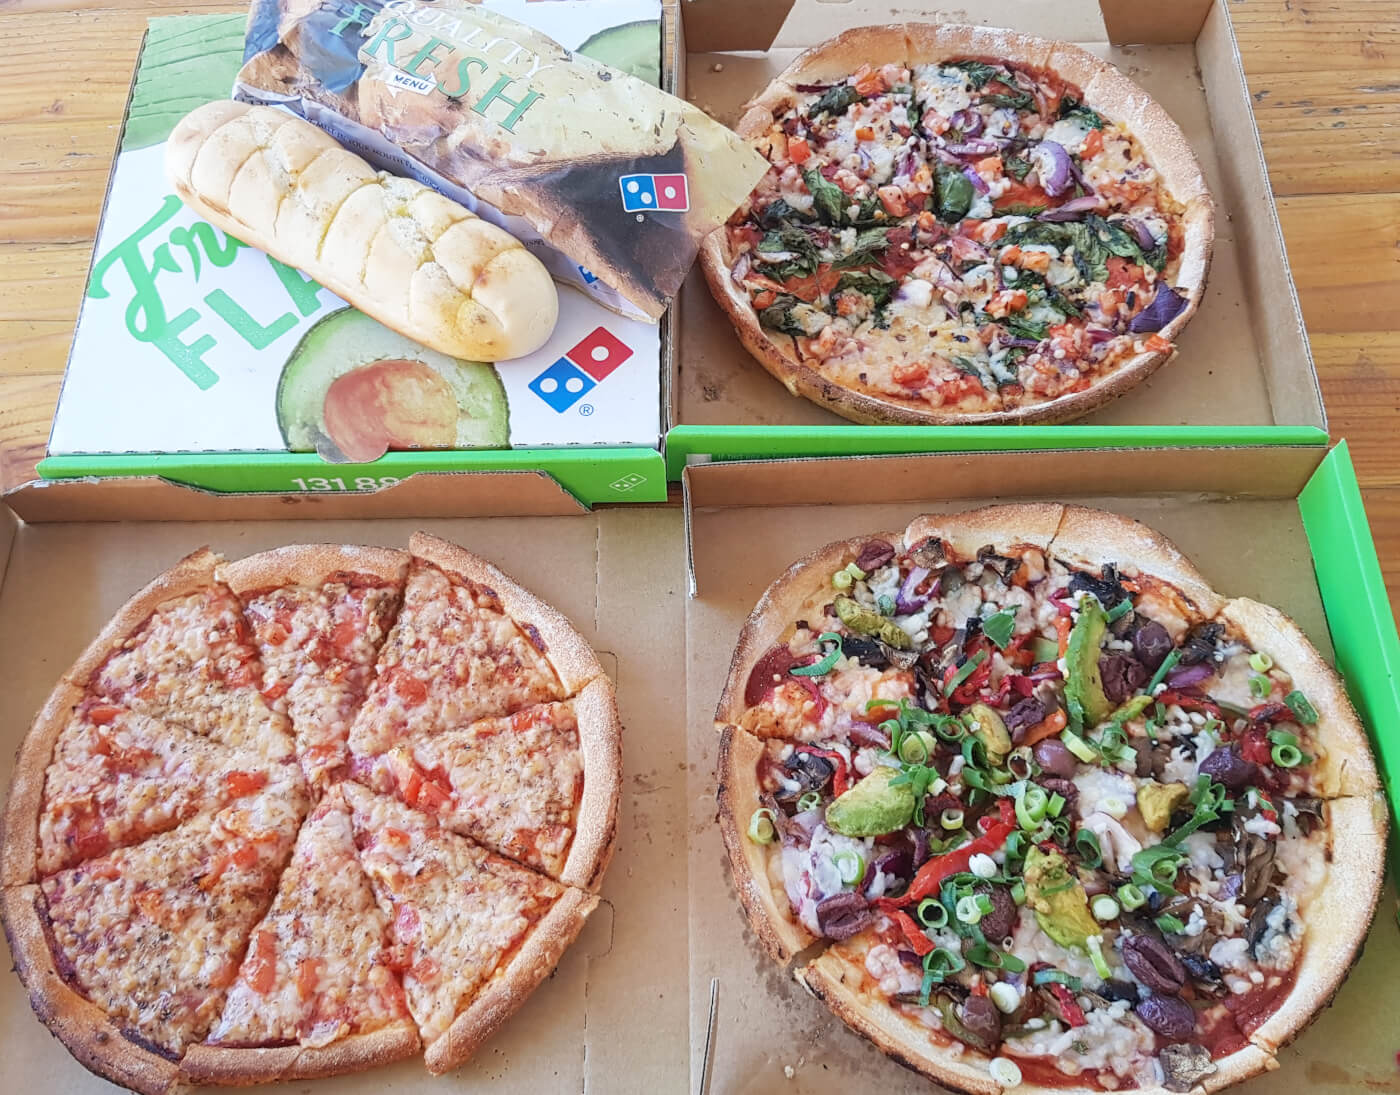 VICTORY: OMG, Domino's Pizza Offers Vegan Cheese!